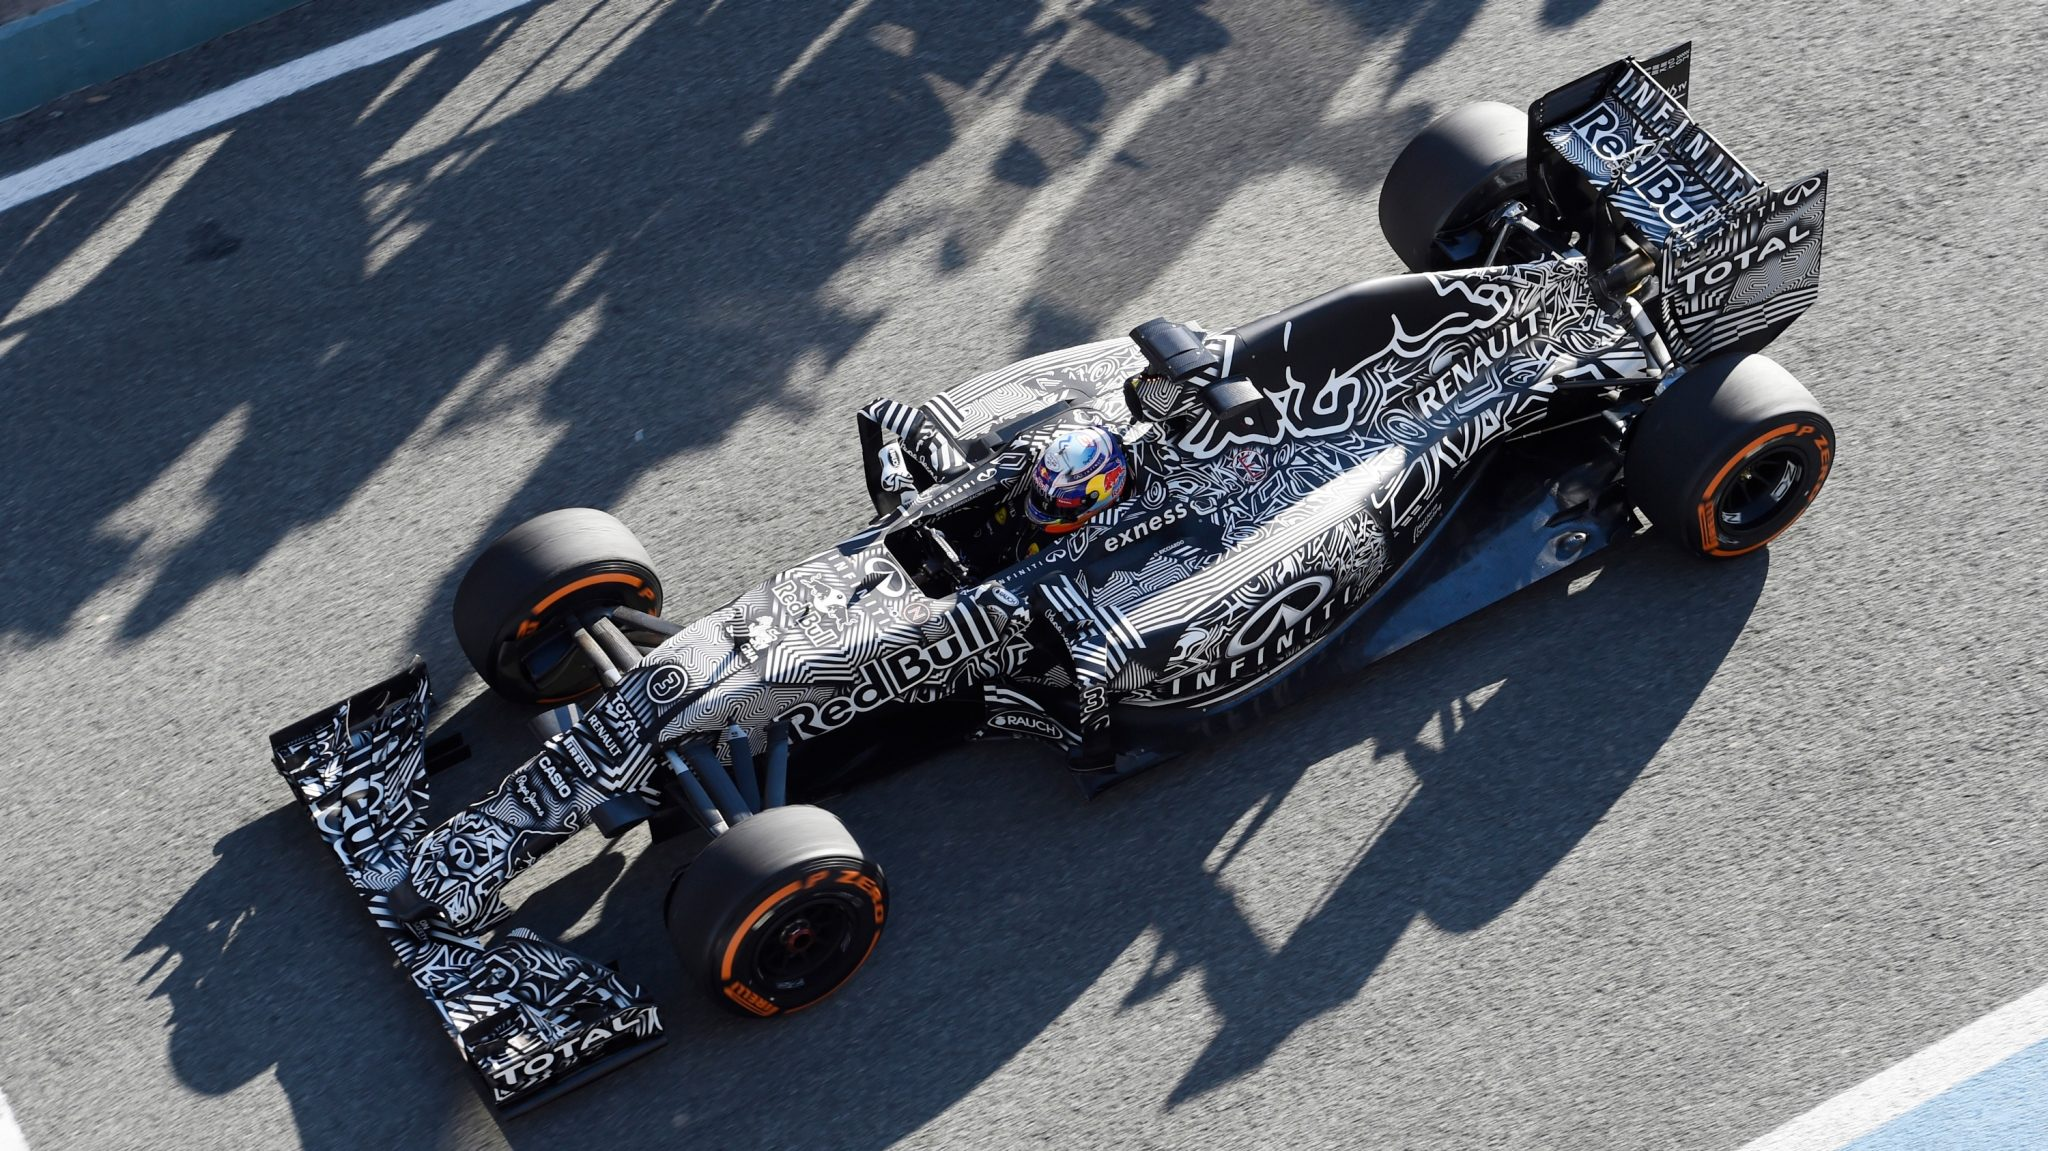 https://www.formula1.com/content/fom-website/en/latest/features/2018/2/surprises-from-car-launches-unveilings/_jcr_content/featureContent/manual_gallery_3/image2.img.2048.medium.jpg/1454668720887.jpg